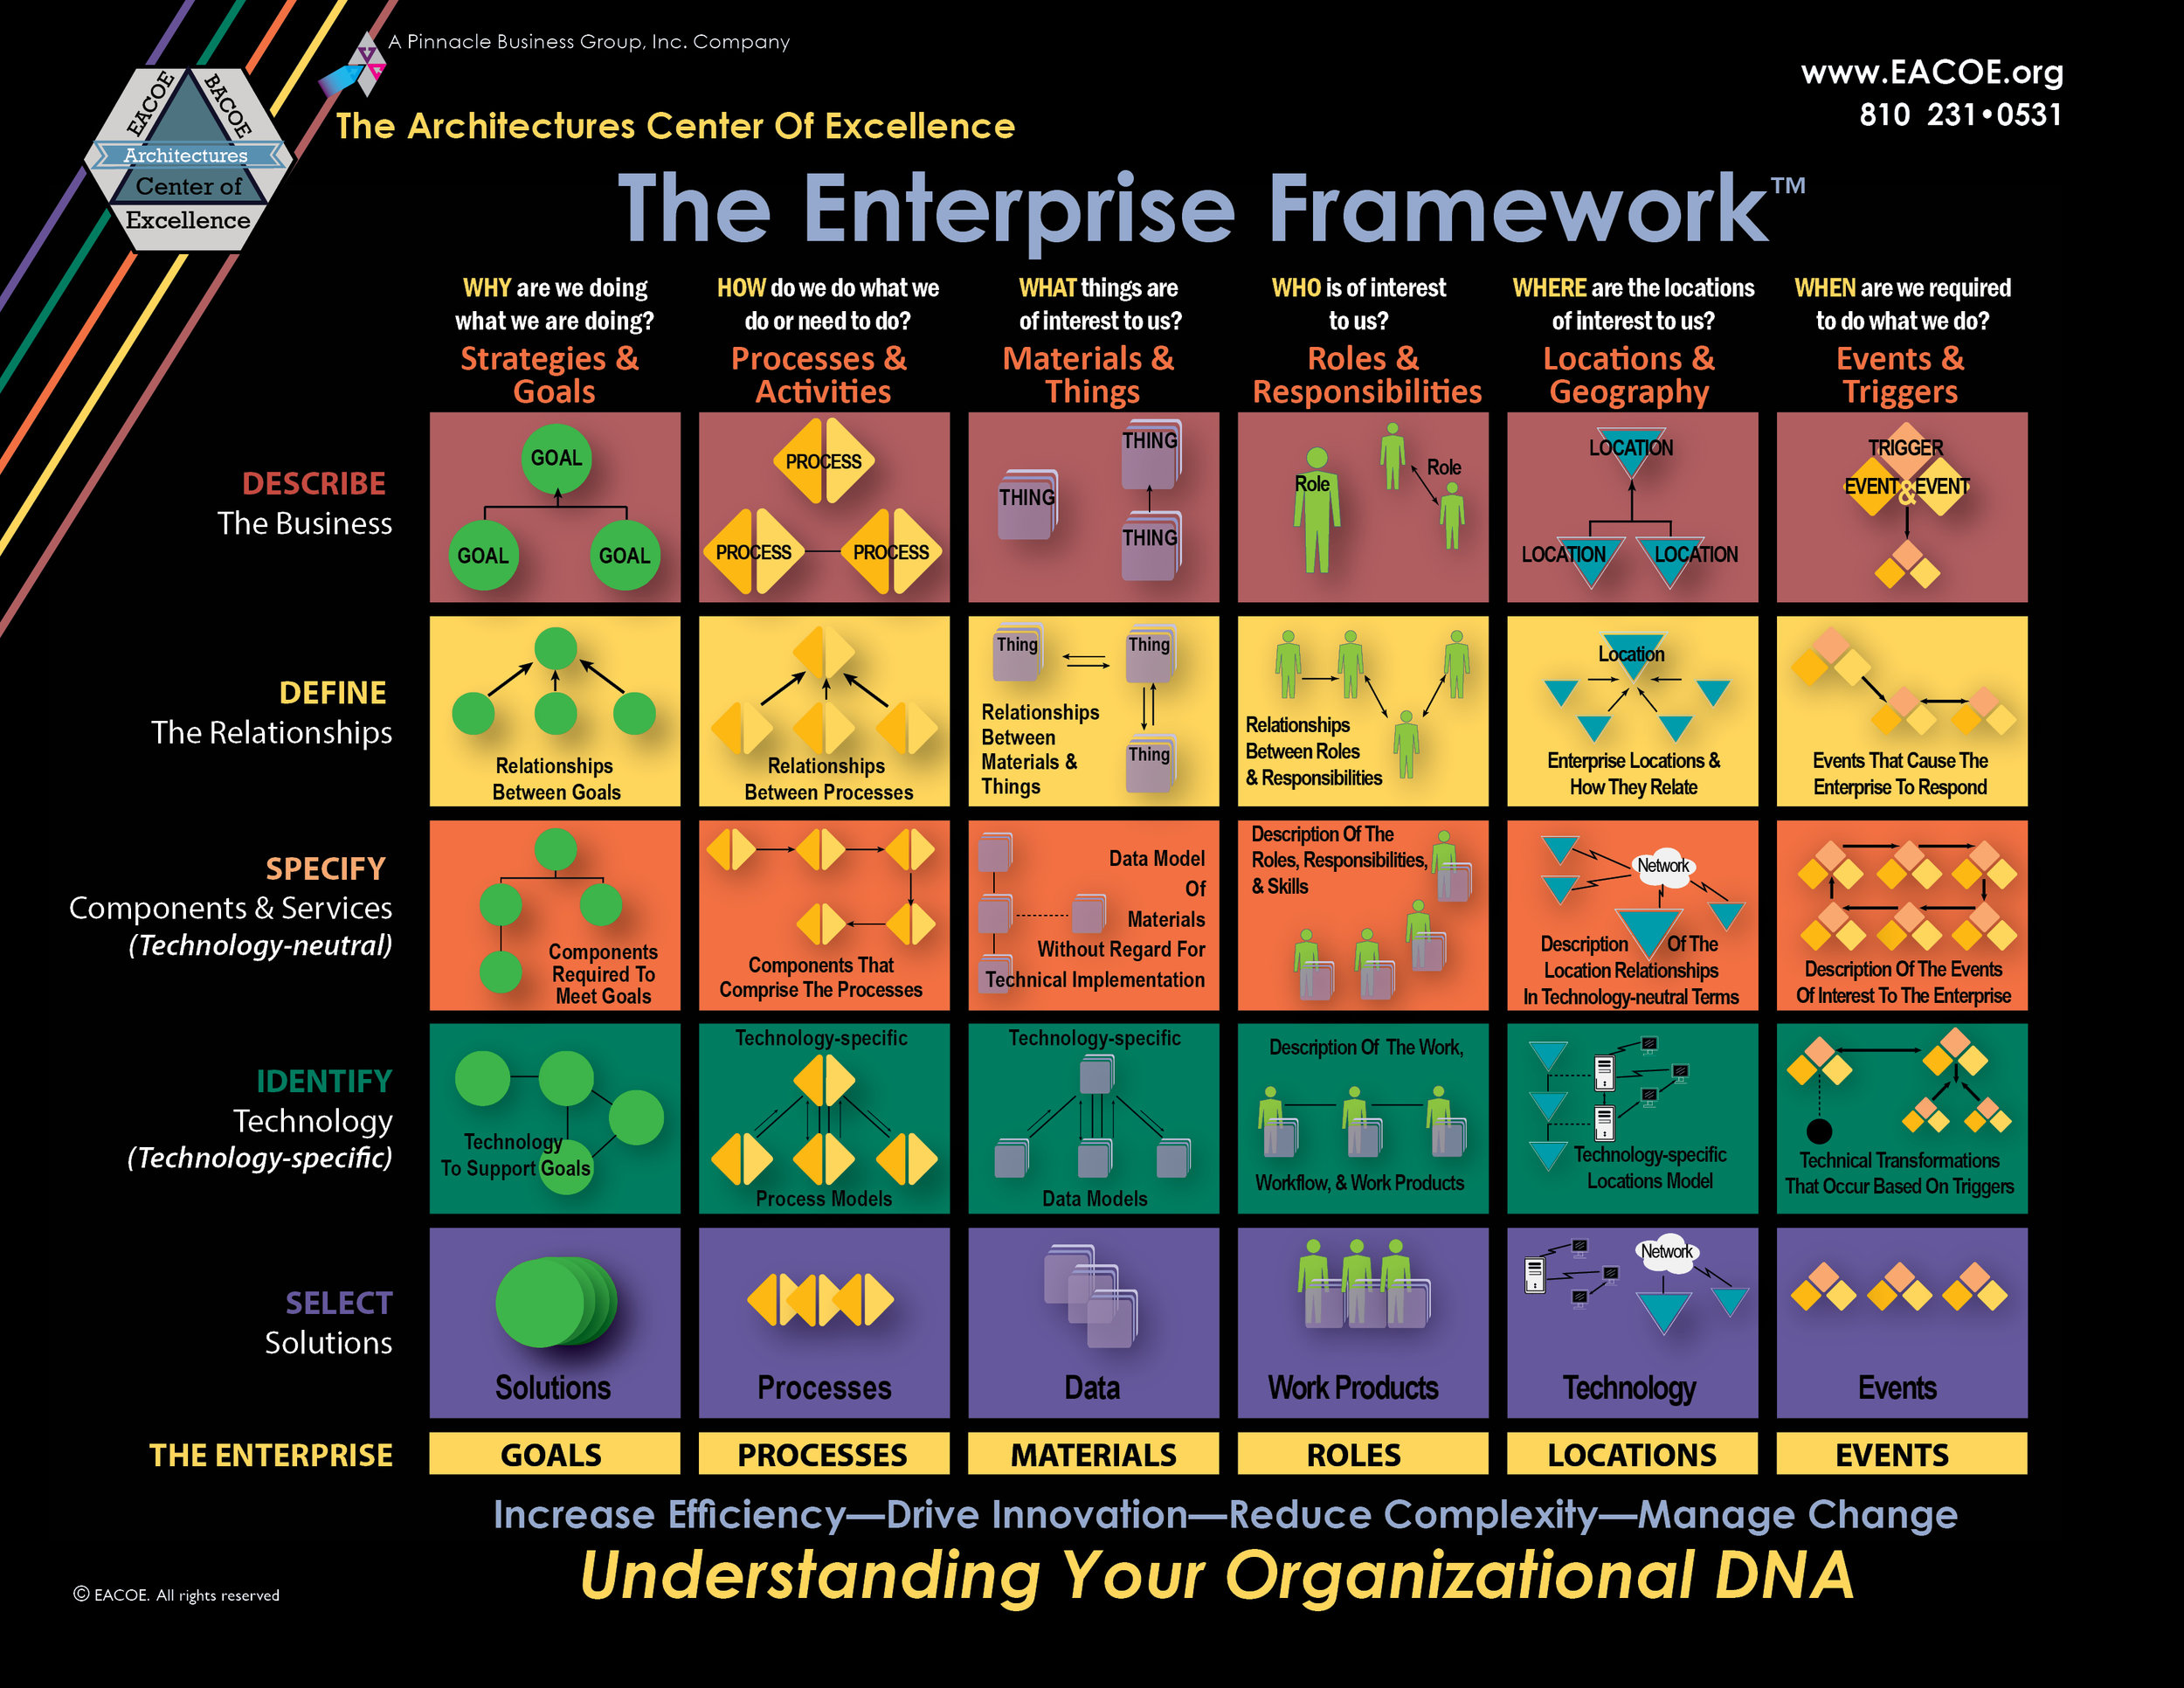 The Enterprise FrameworkTM is THE Definitive Framework for Your Enterprise Architecture Activities